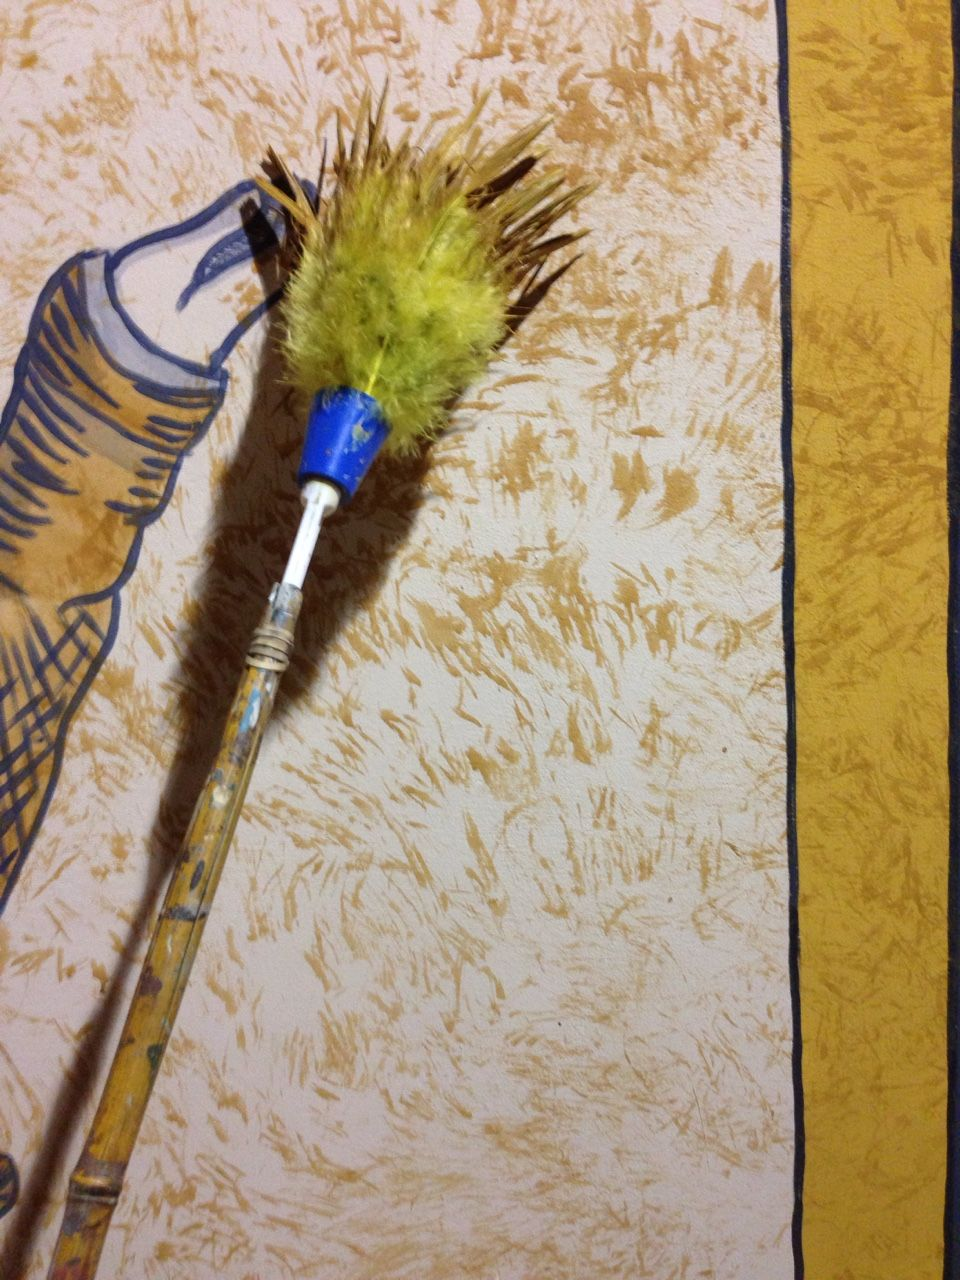 Schlepitchka--Wanna texture something really fast? Smack it with a feather duster a couple thousand times.